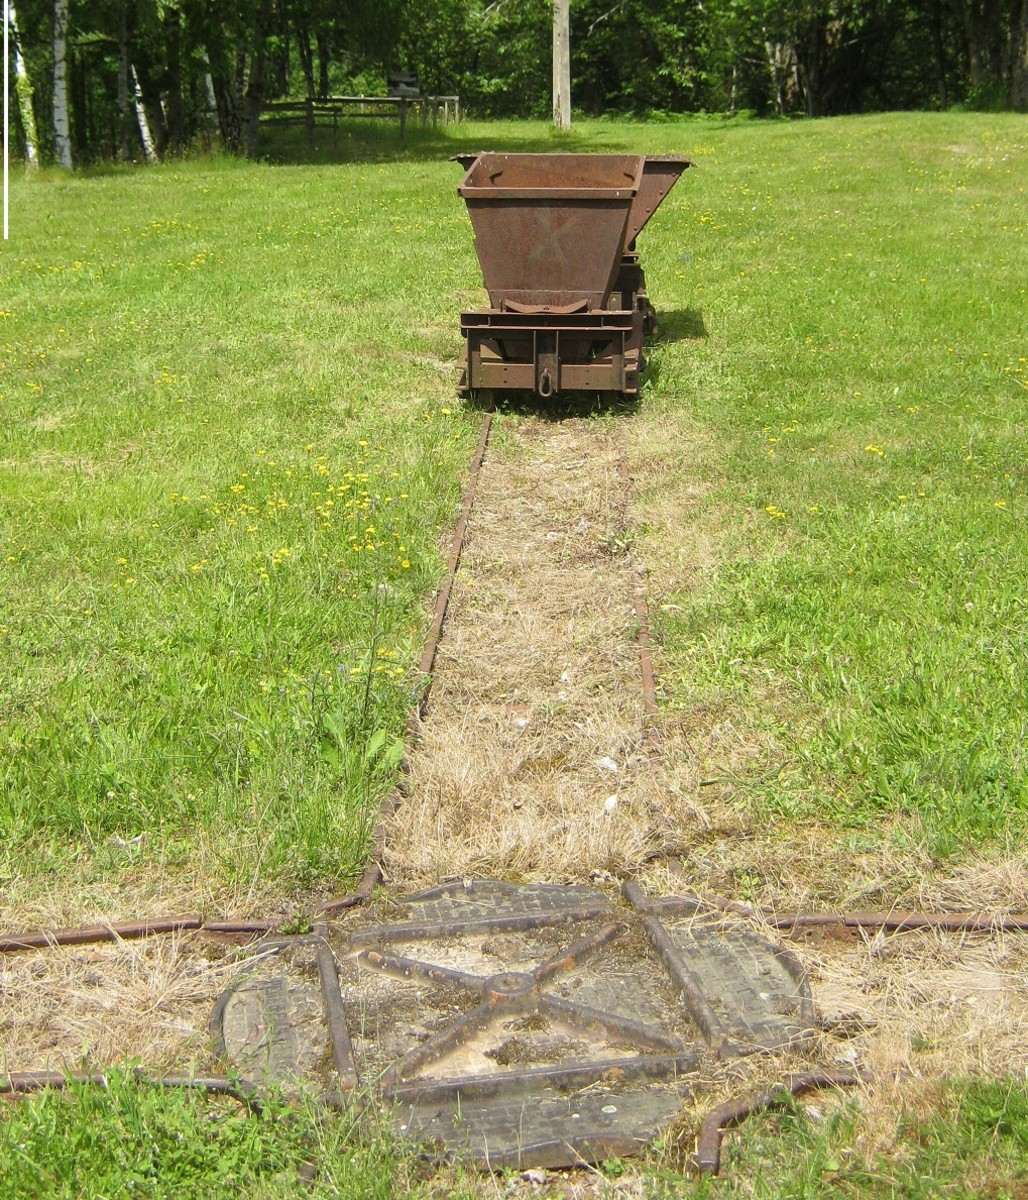 The site retains the traces of the history of the quarry; tiny rail tracks with their iron carts criss-cross the grass.